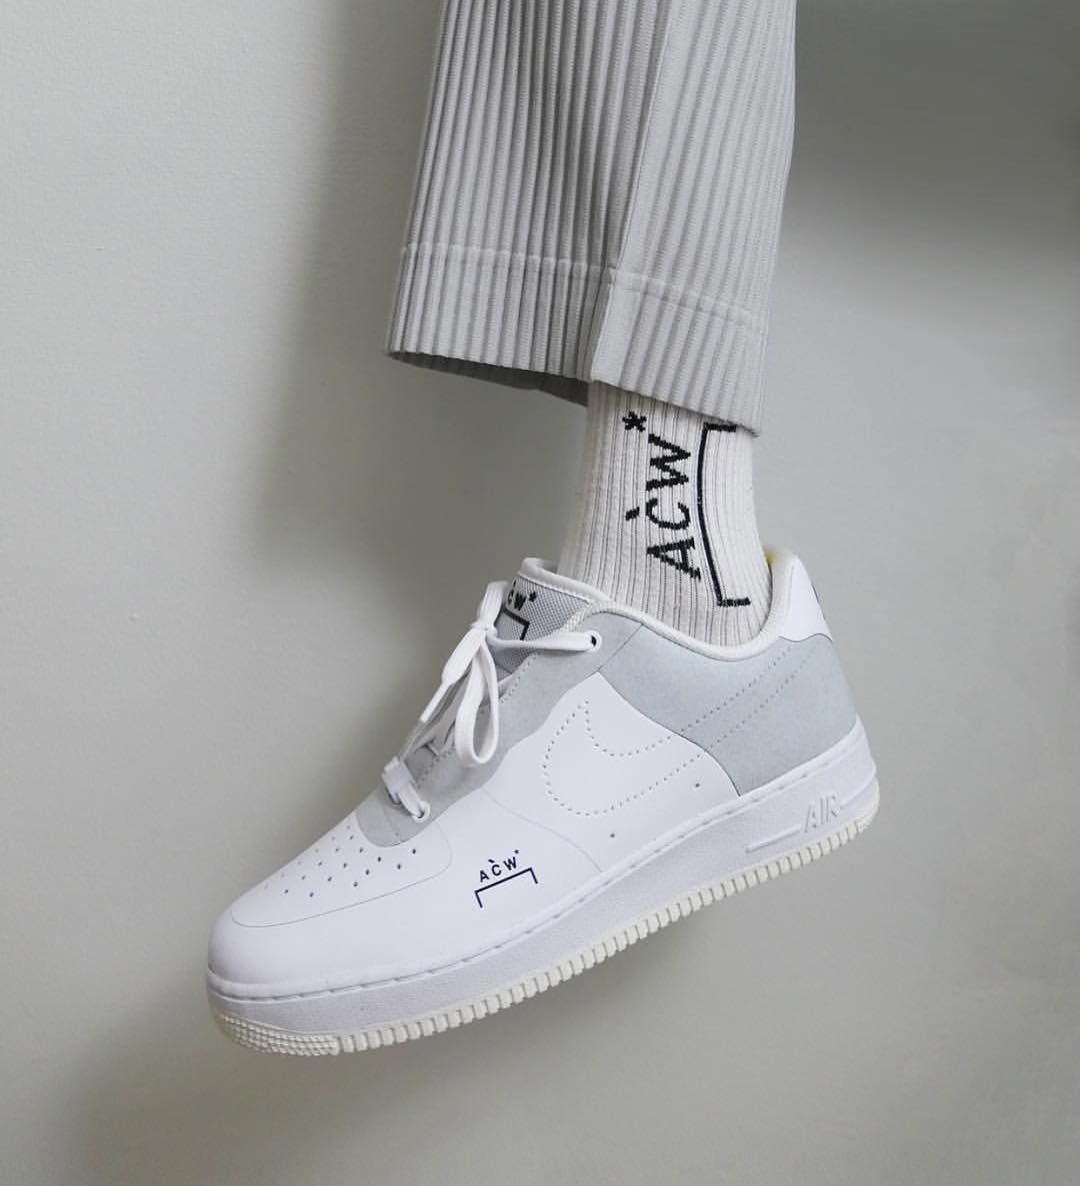 """reputable site 69ed5 b010f PAUSE Magazine on Instagram  """"Nike x A-COLD-WALL  Air Force 1 Low 📸 by   onlygeo  PAUSEorSkip """" Find this Pin and more ..."""